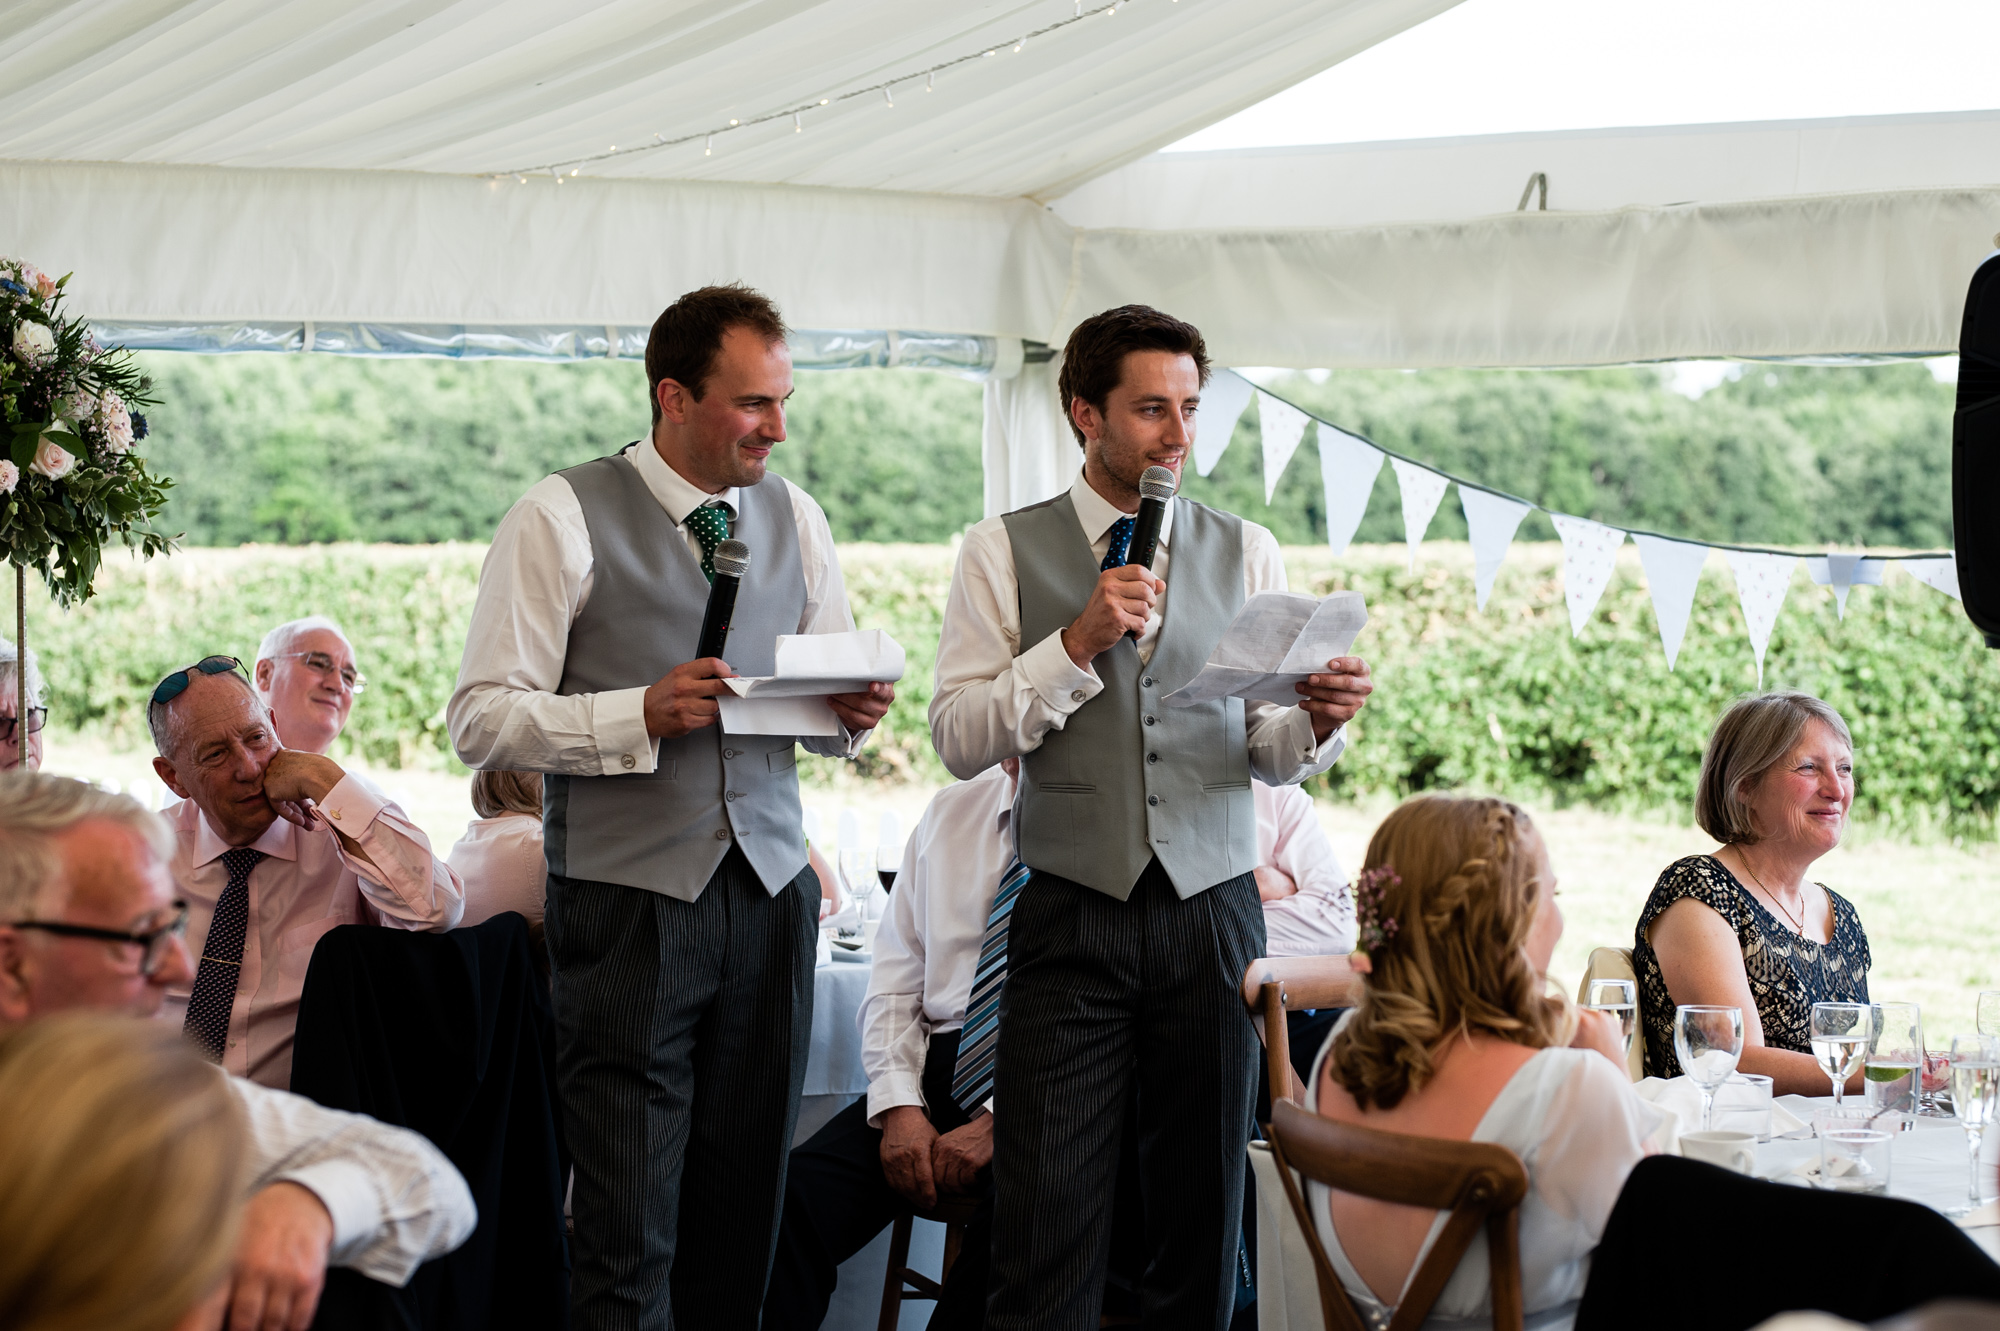 Cotswold Wedding Photography 11.09.1836.jpg